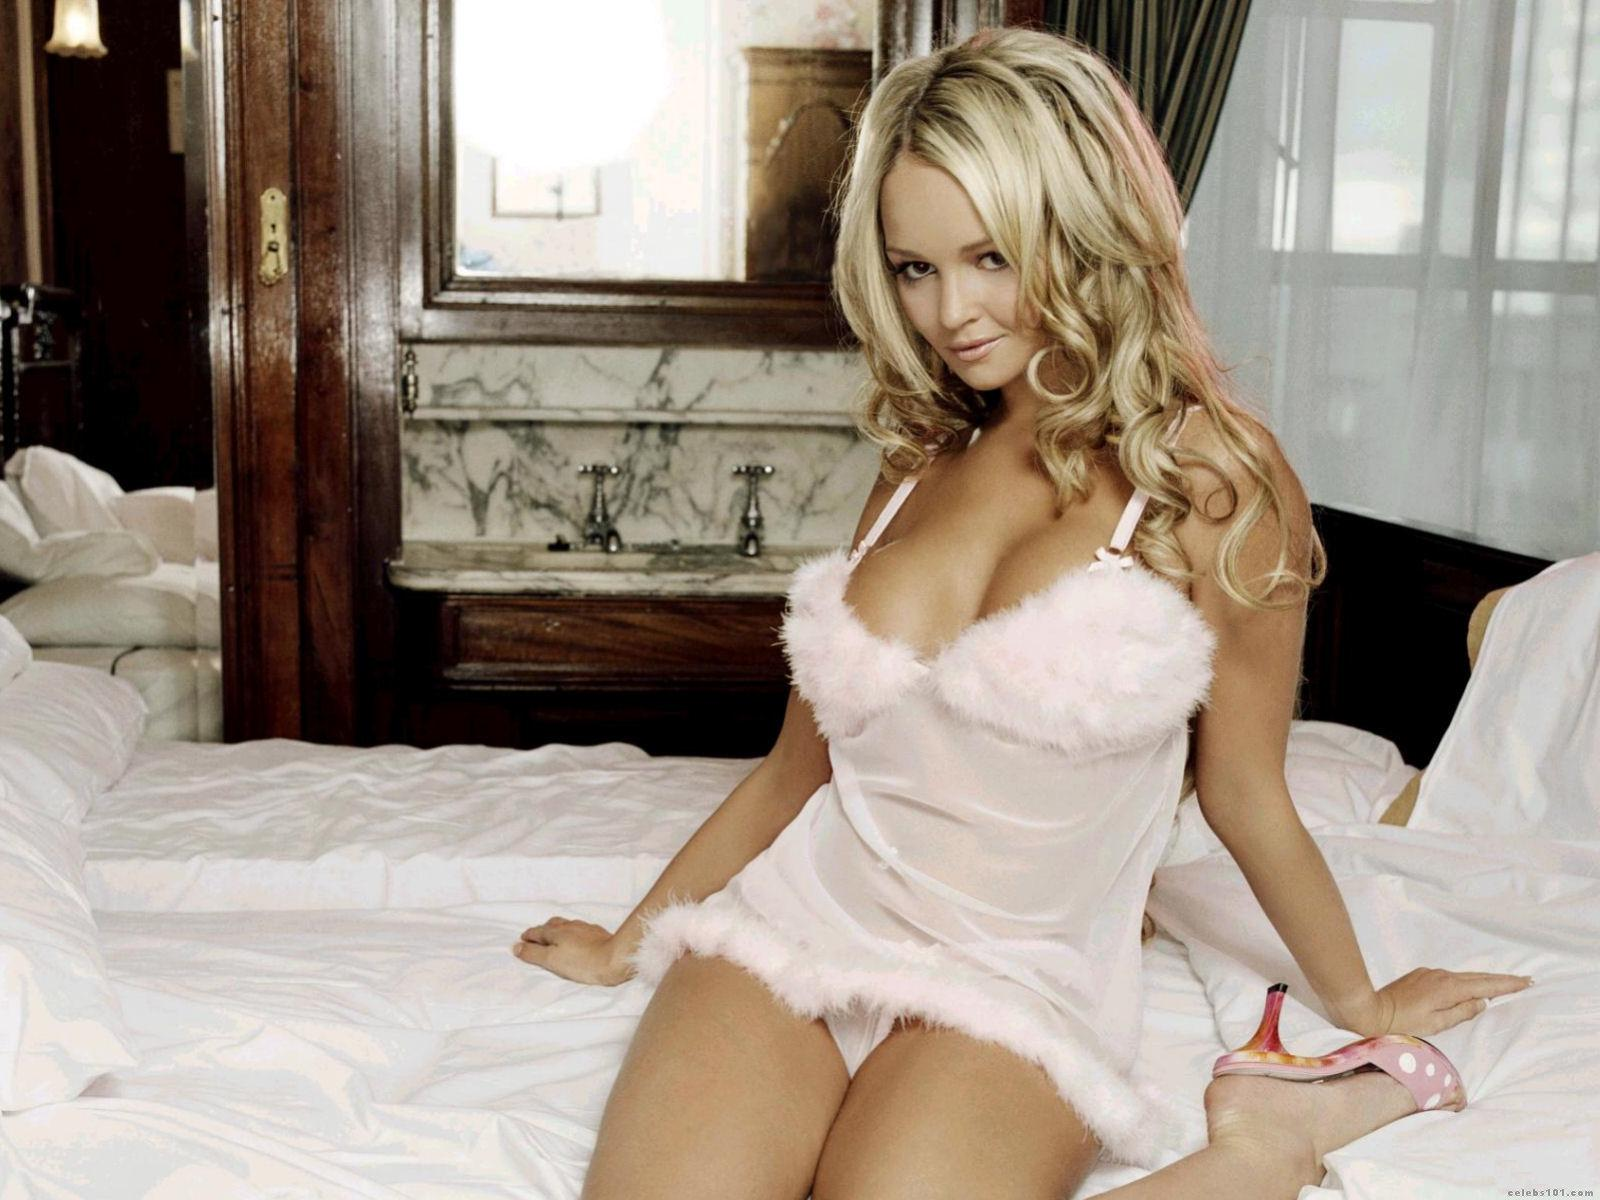 http://www.celebs101.com/wallpapers/Jennifer_Ellison/190777/Jennifer_Ellison__4.jpg